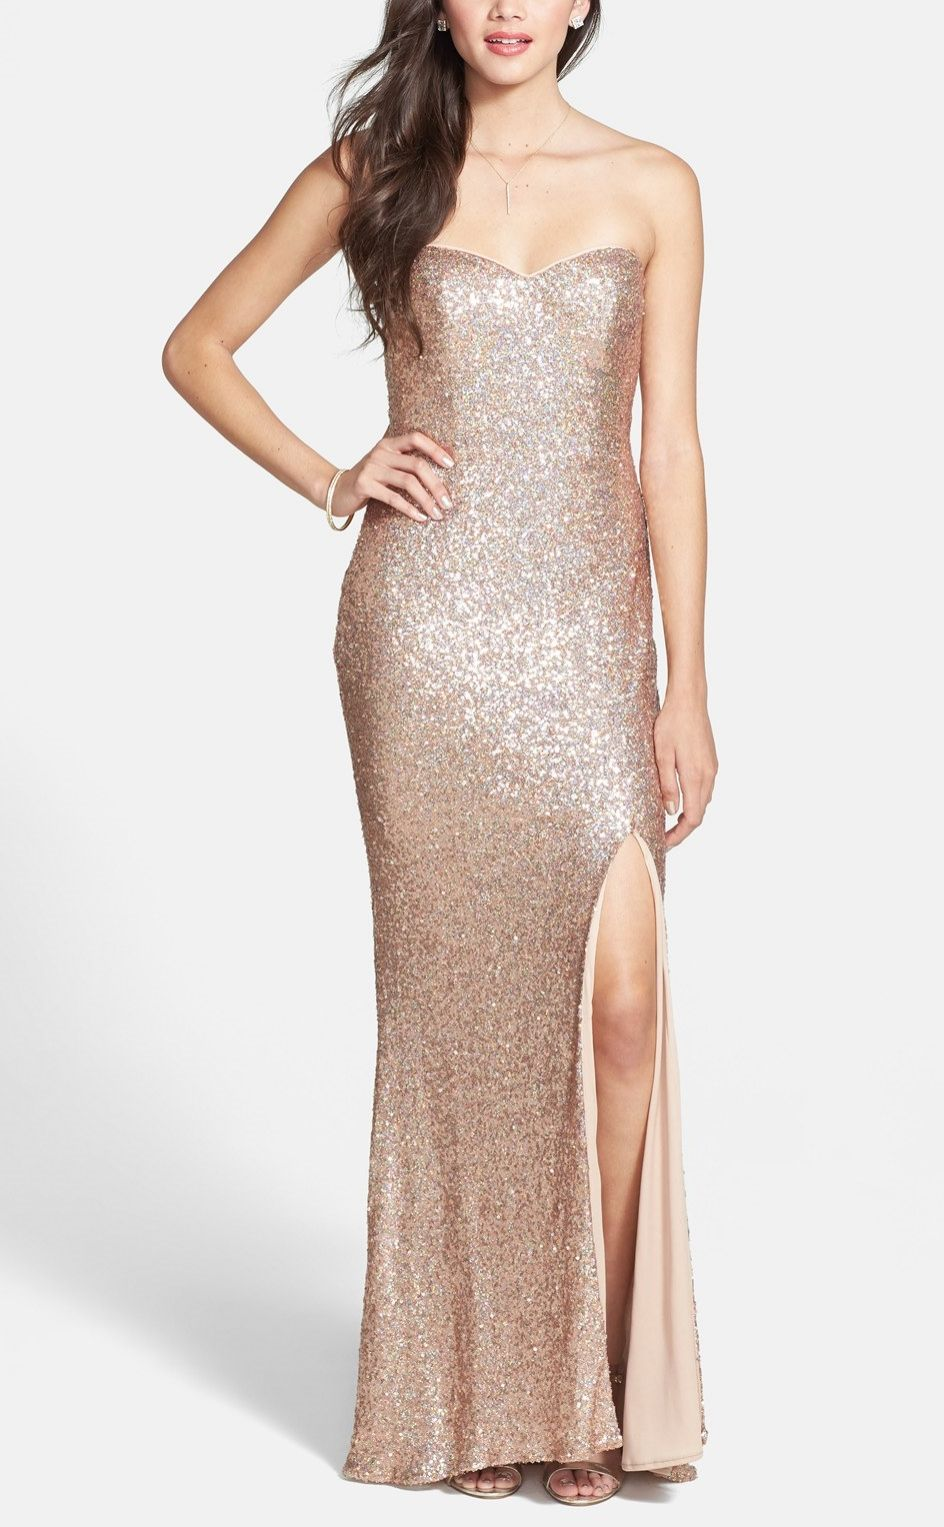 This champagne colored sequin gown would be stunning for prom